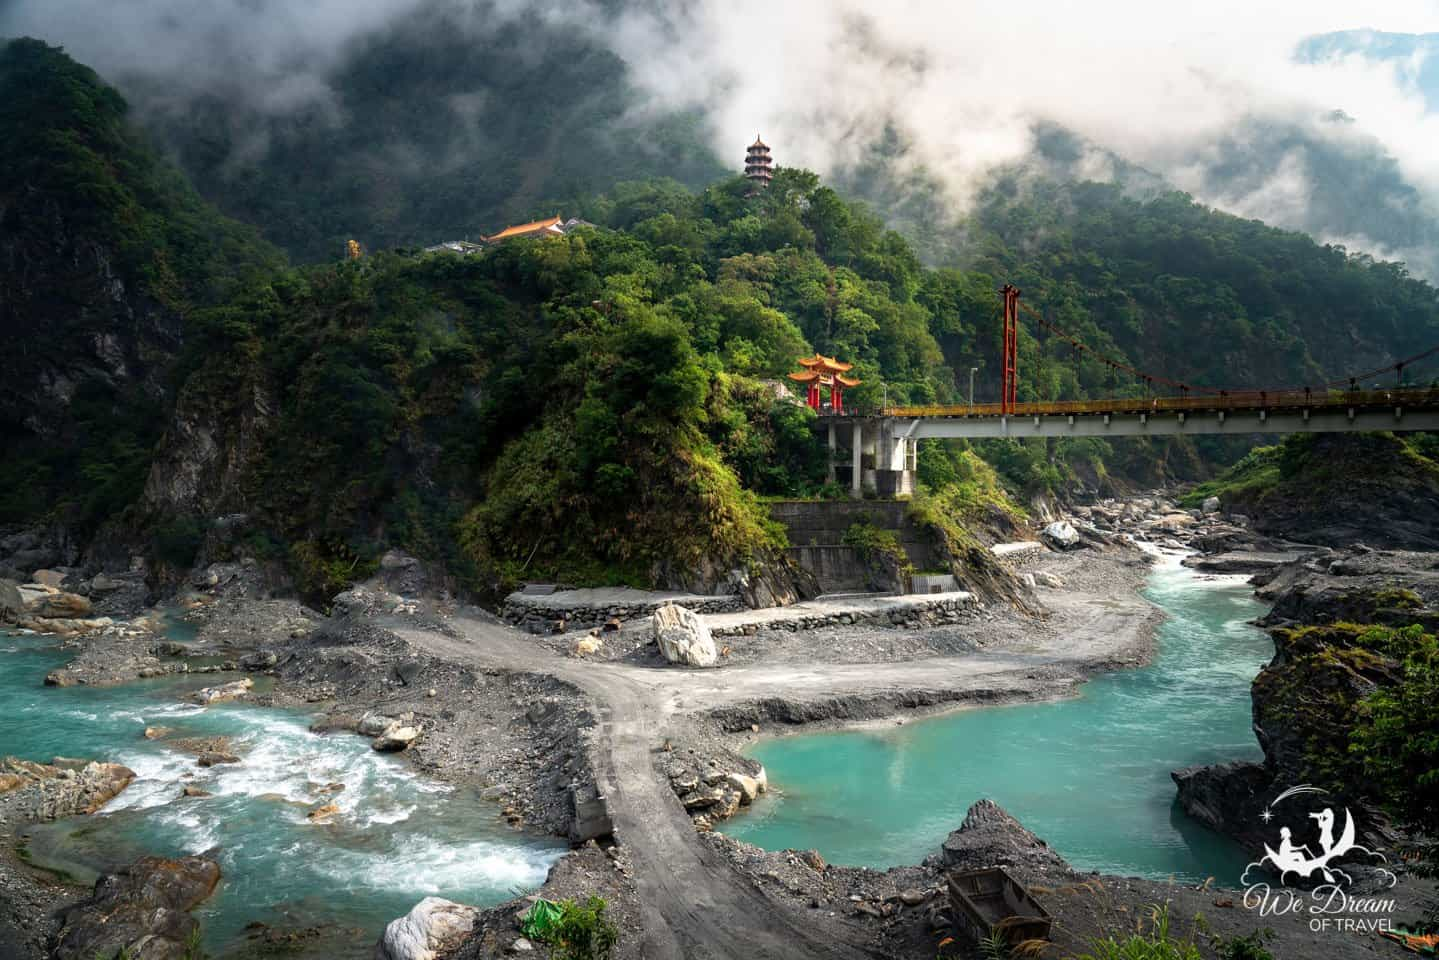 My favorite please in all of Taiwan and an undisputed dream destination is the Taroko Gorge.